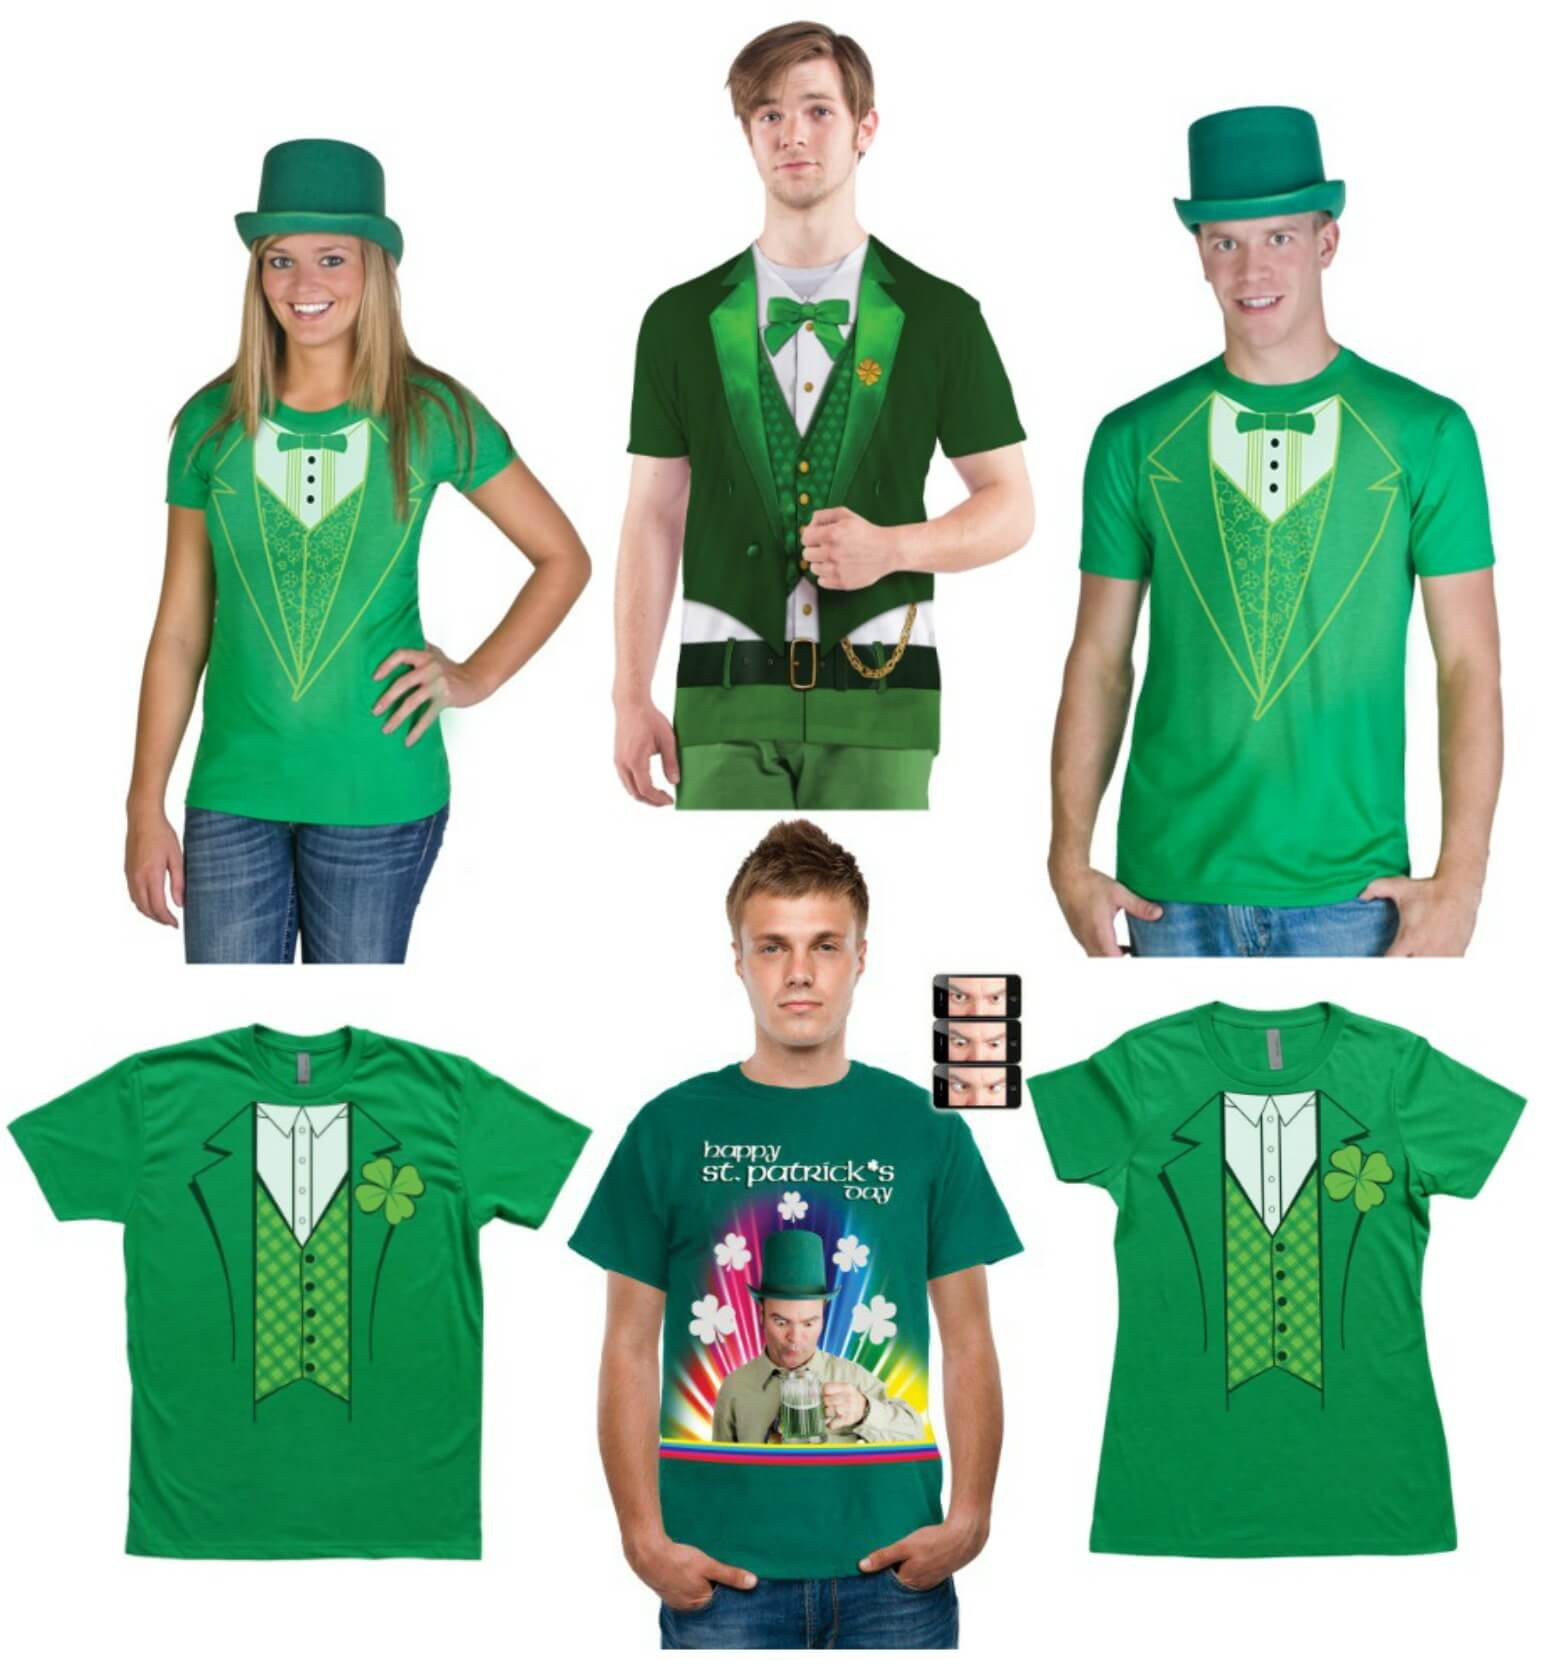 Green St. Patrick's Day T-Shirt